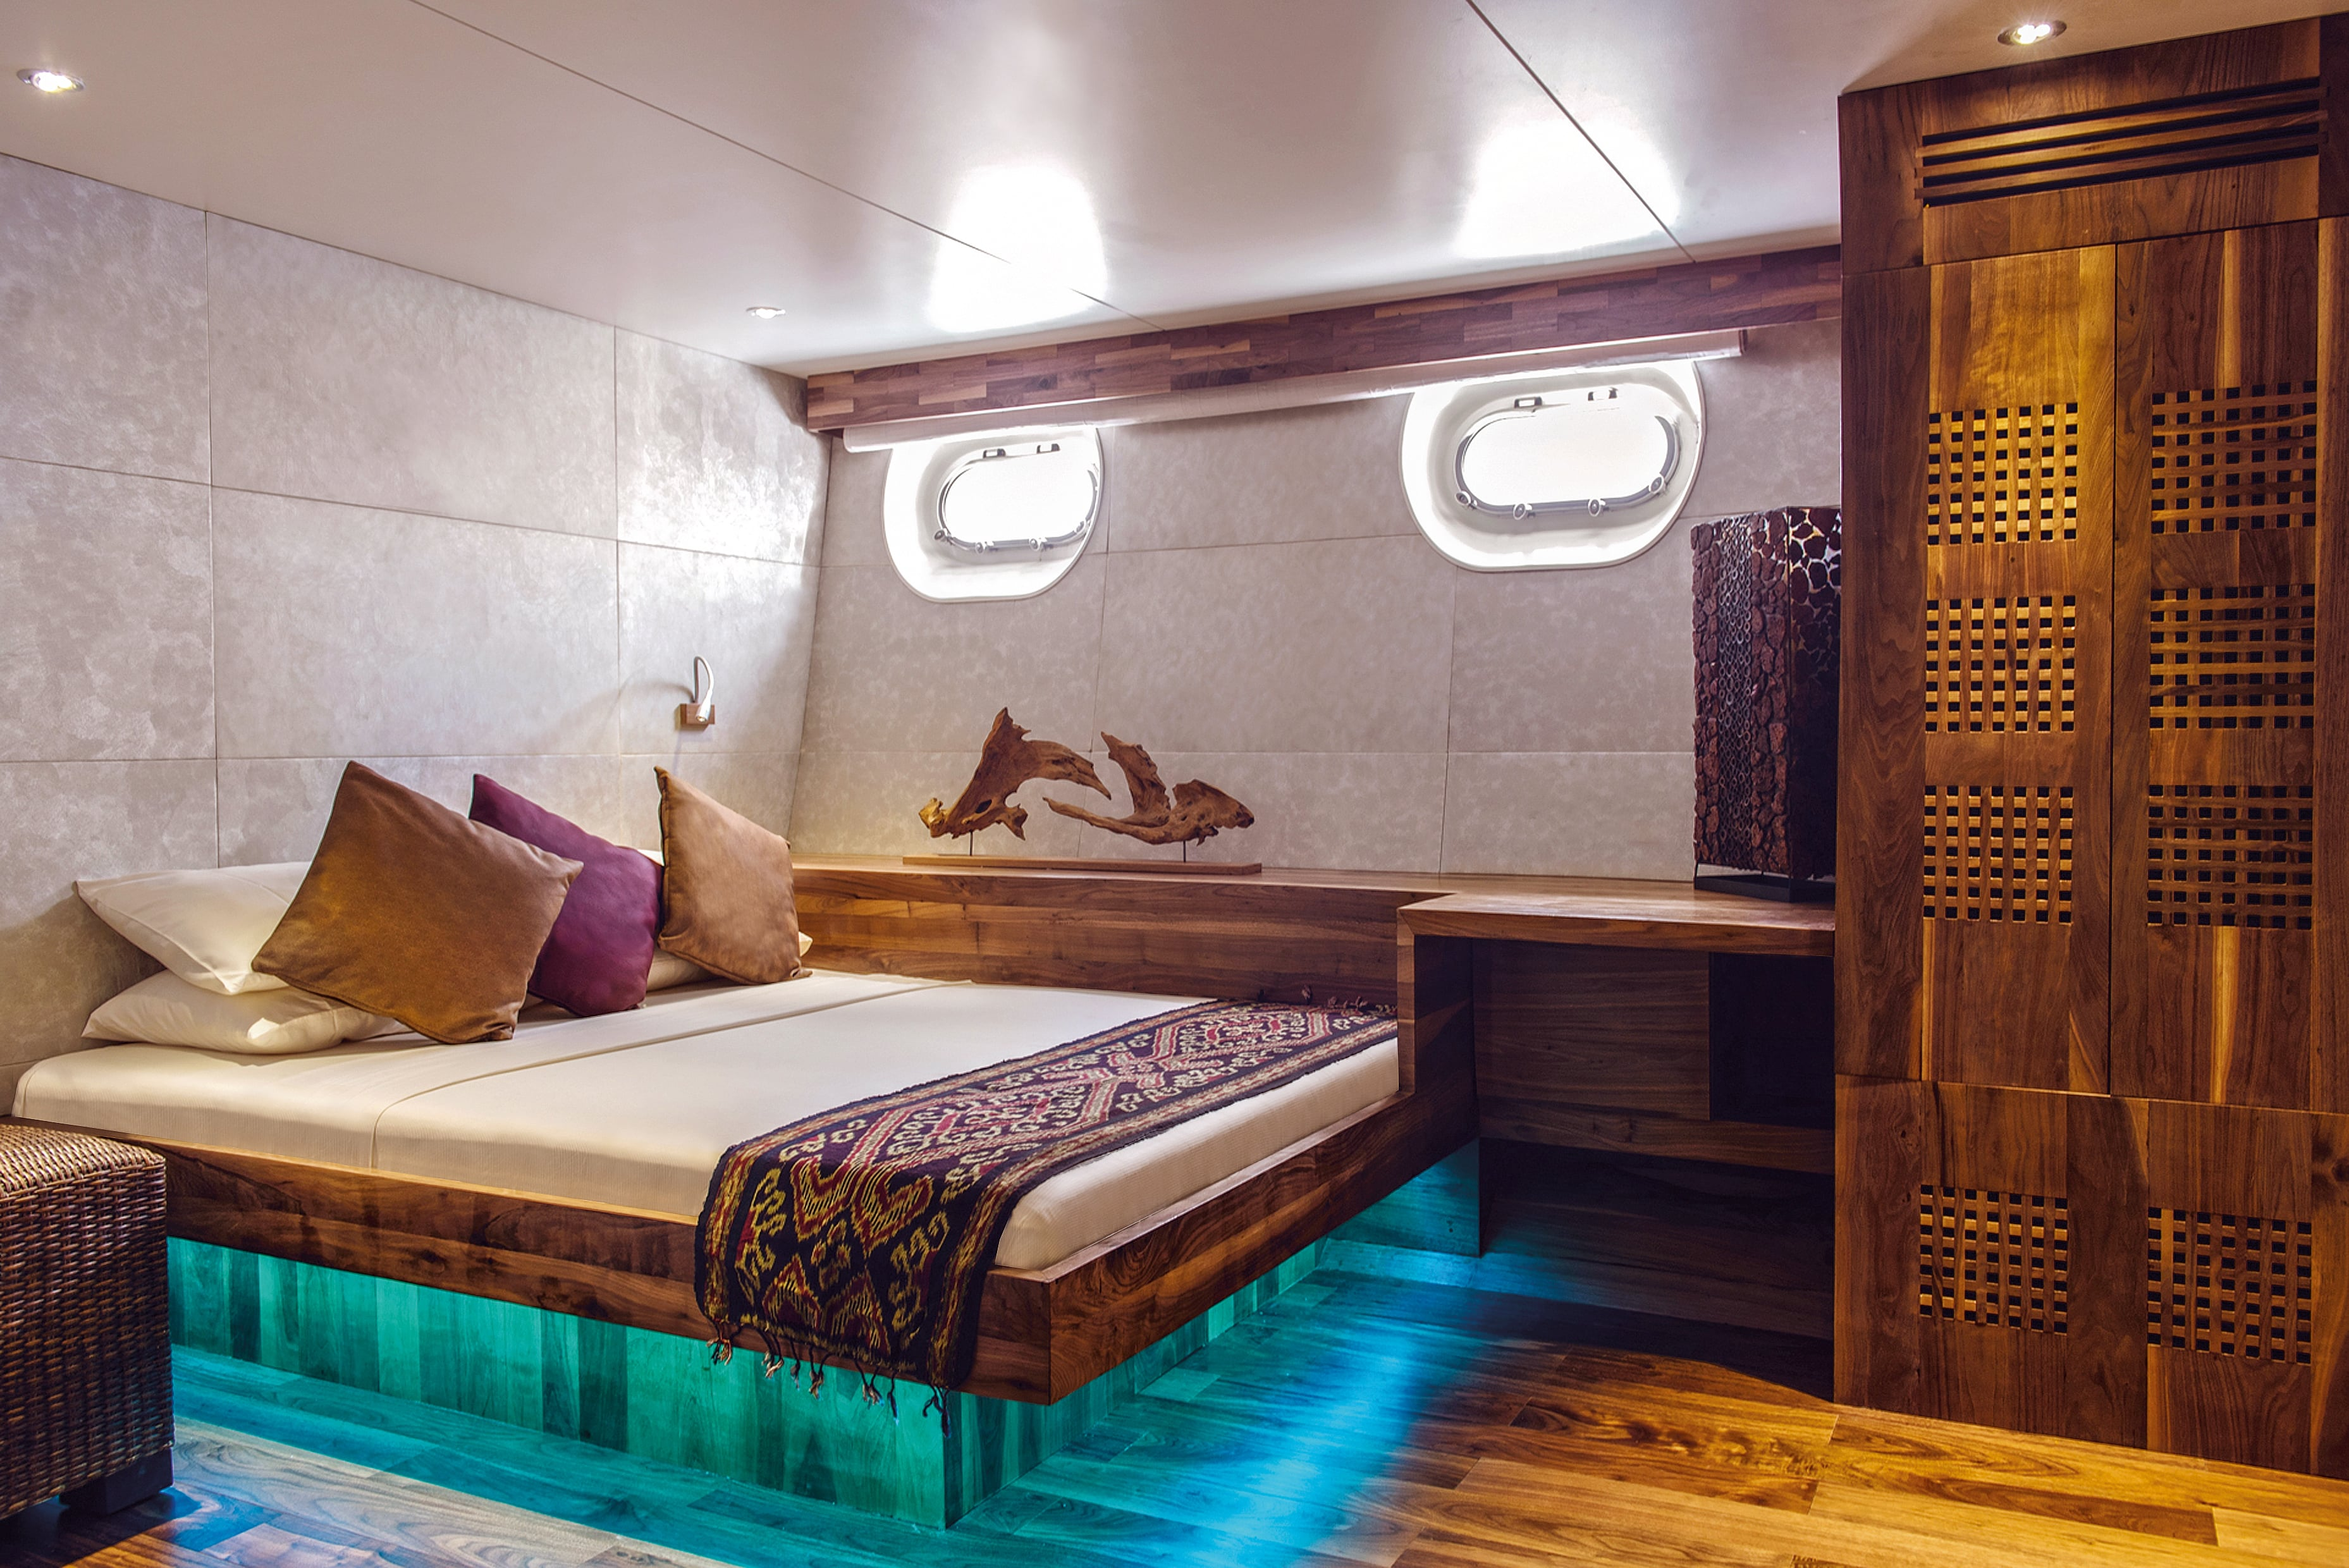 Luxurious cabins and rich decors are a hallmark of Maldives liveaboard dive yachts.